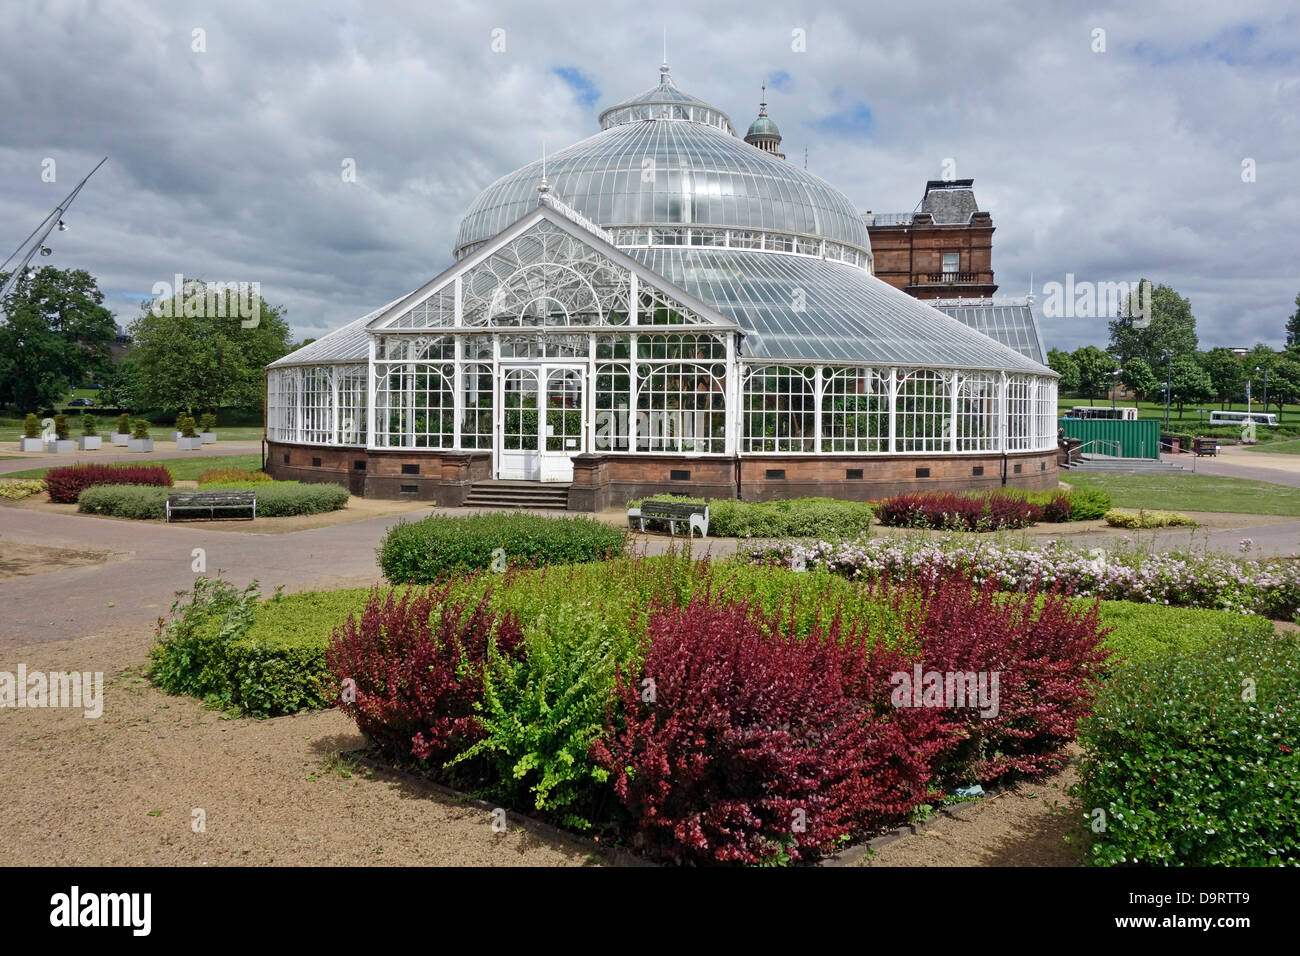 People's Palace and Winter Gardens in Glasgow Green park Glasgow Scotland - Stock Image